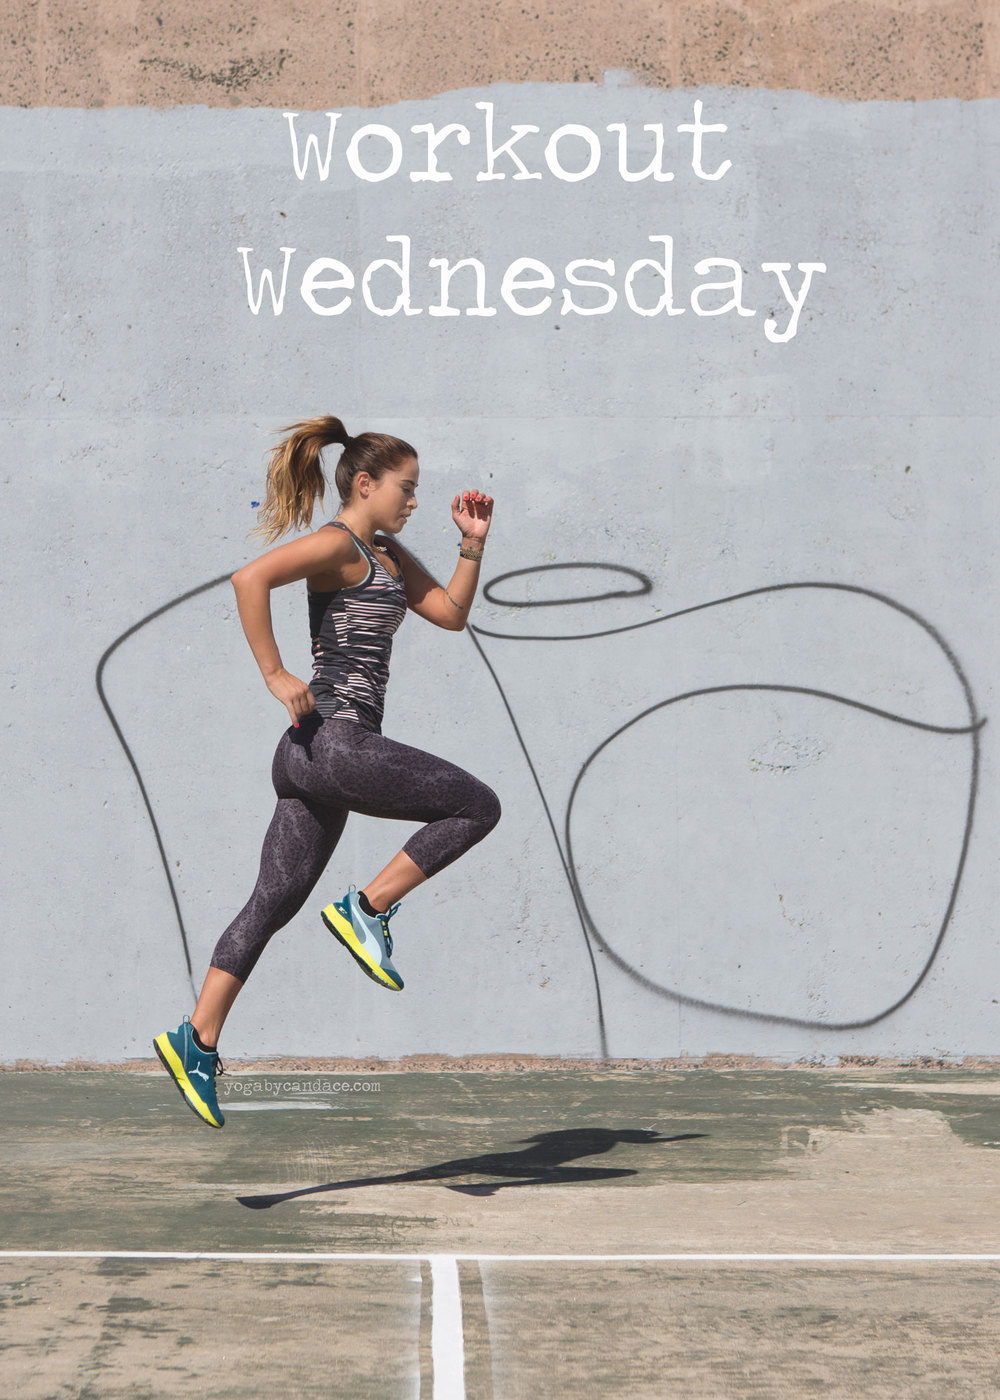 Pin now! Workout Wednesday